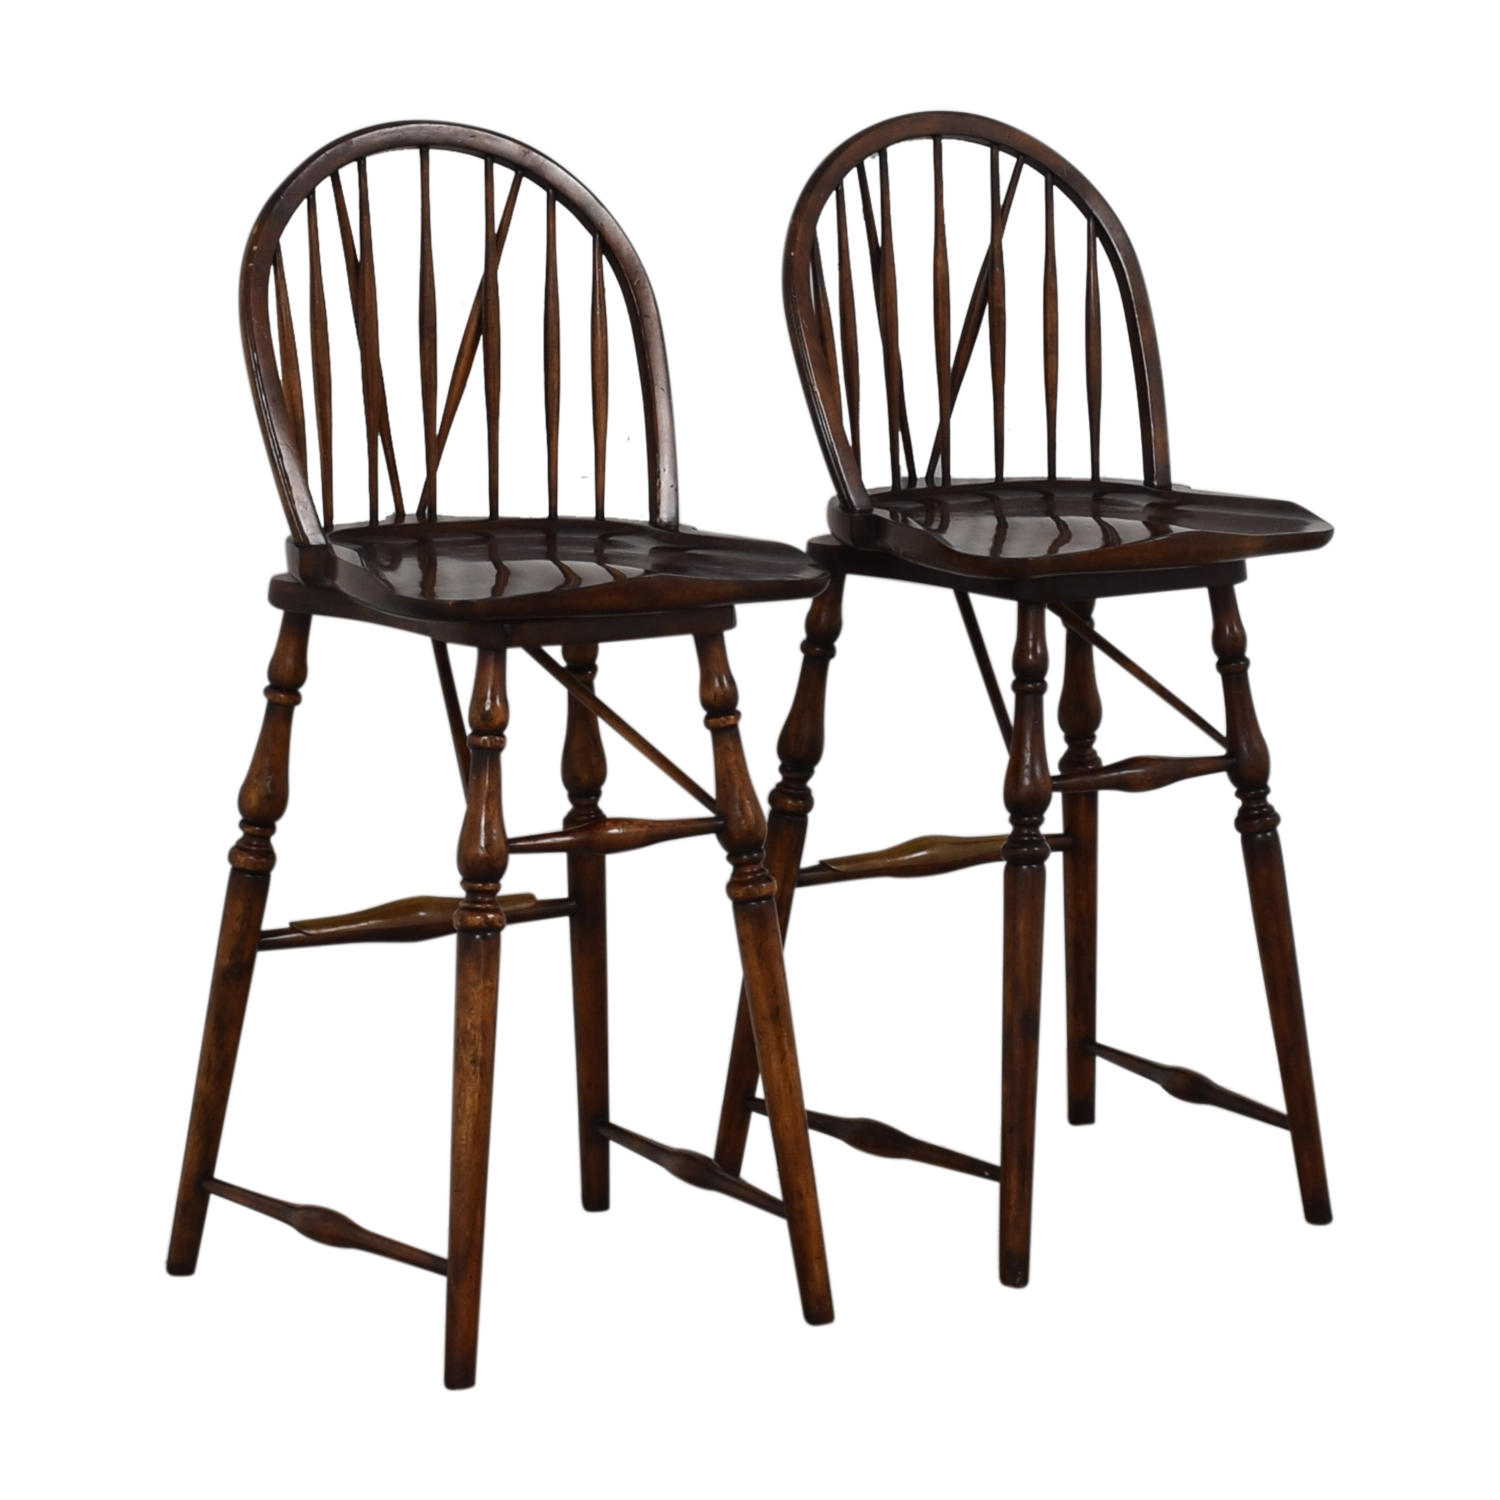 David Michael Furniture David Michael Furniture Wood Bar Stools for sale